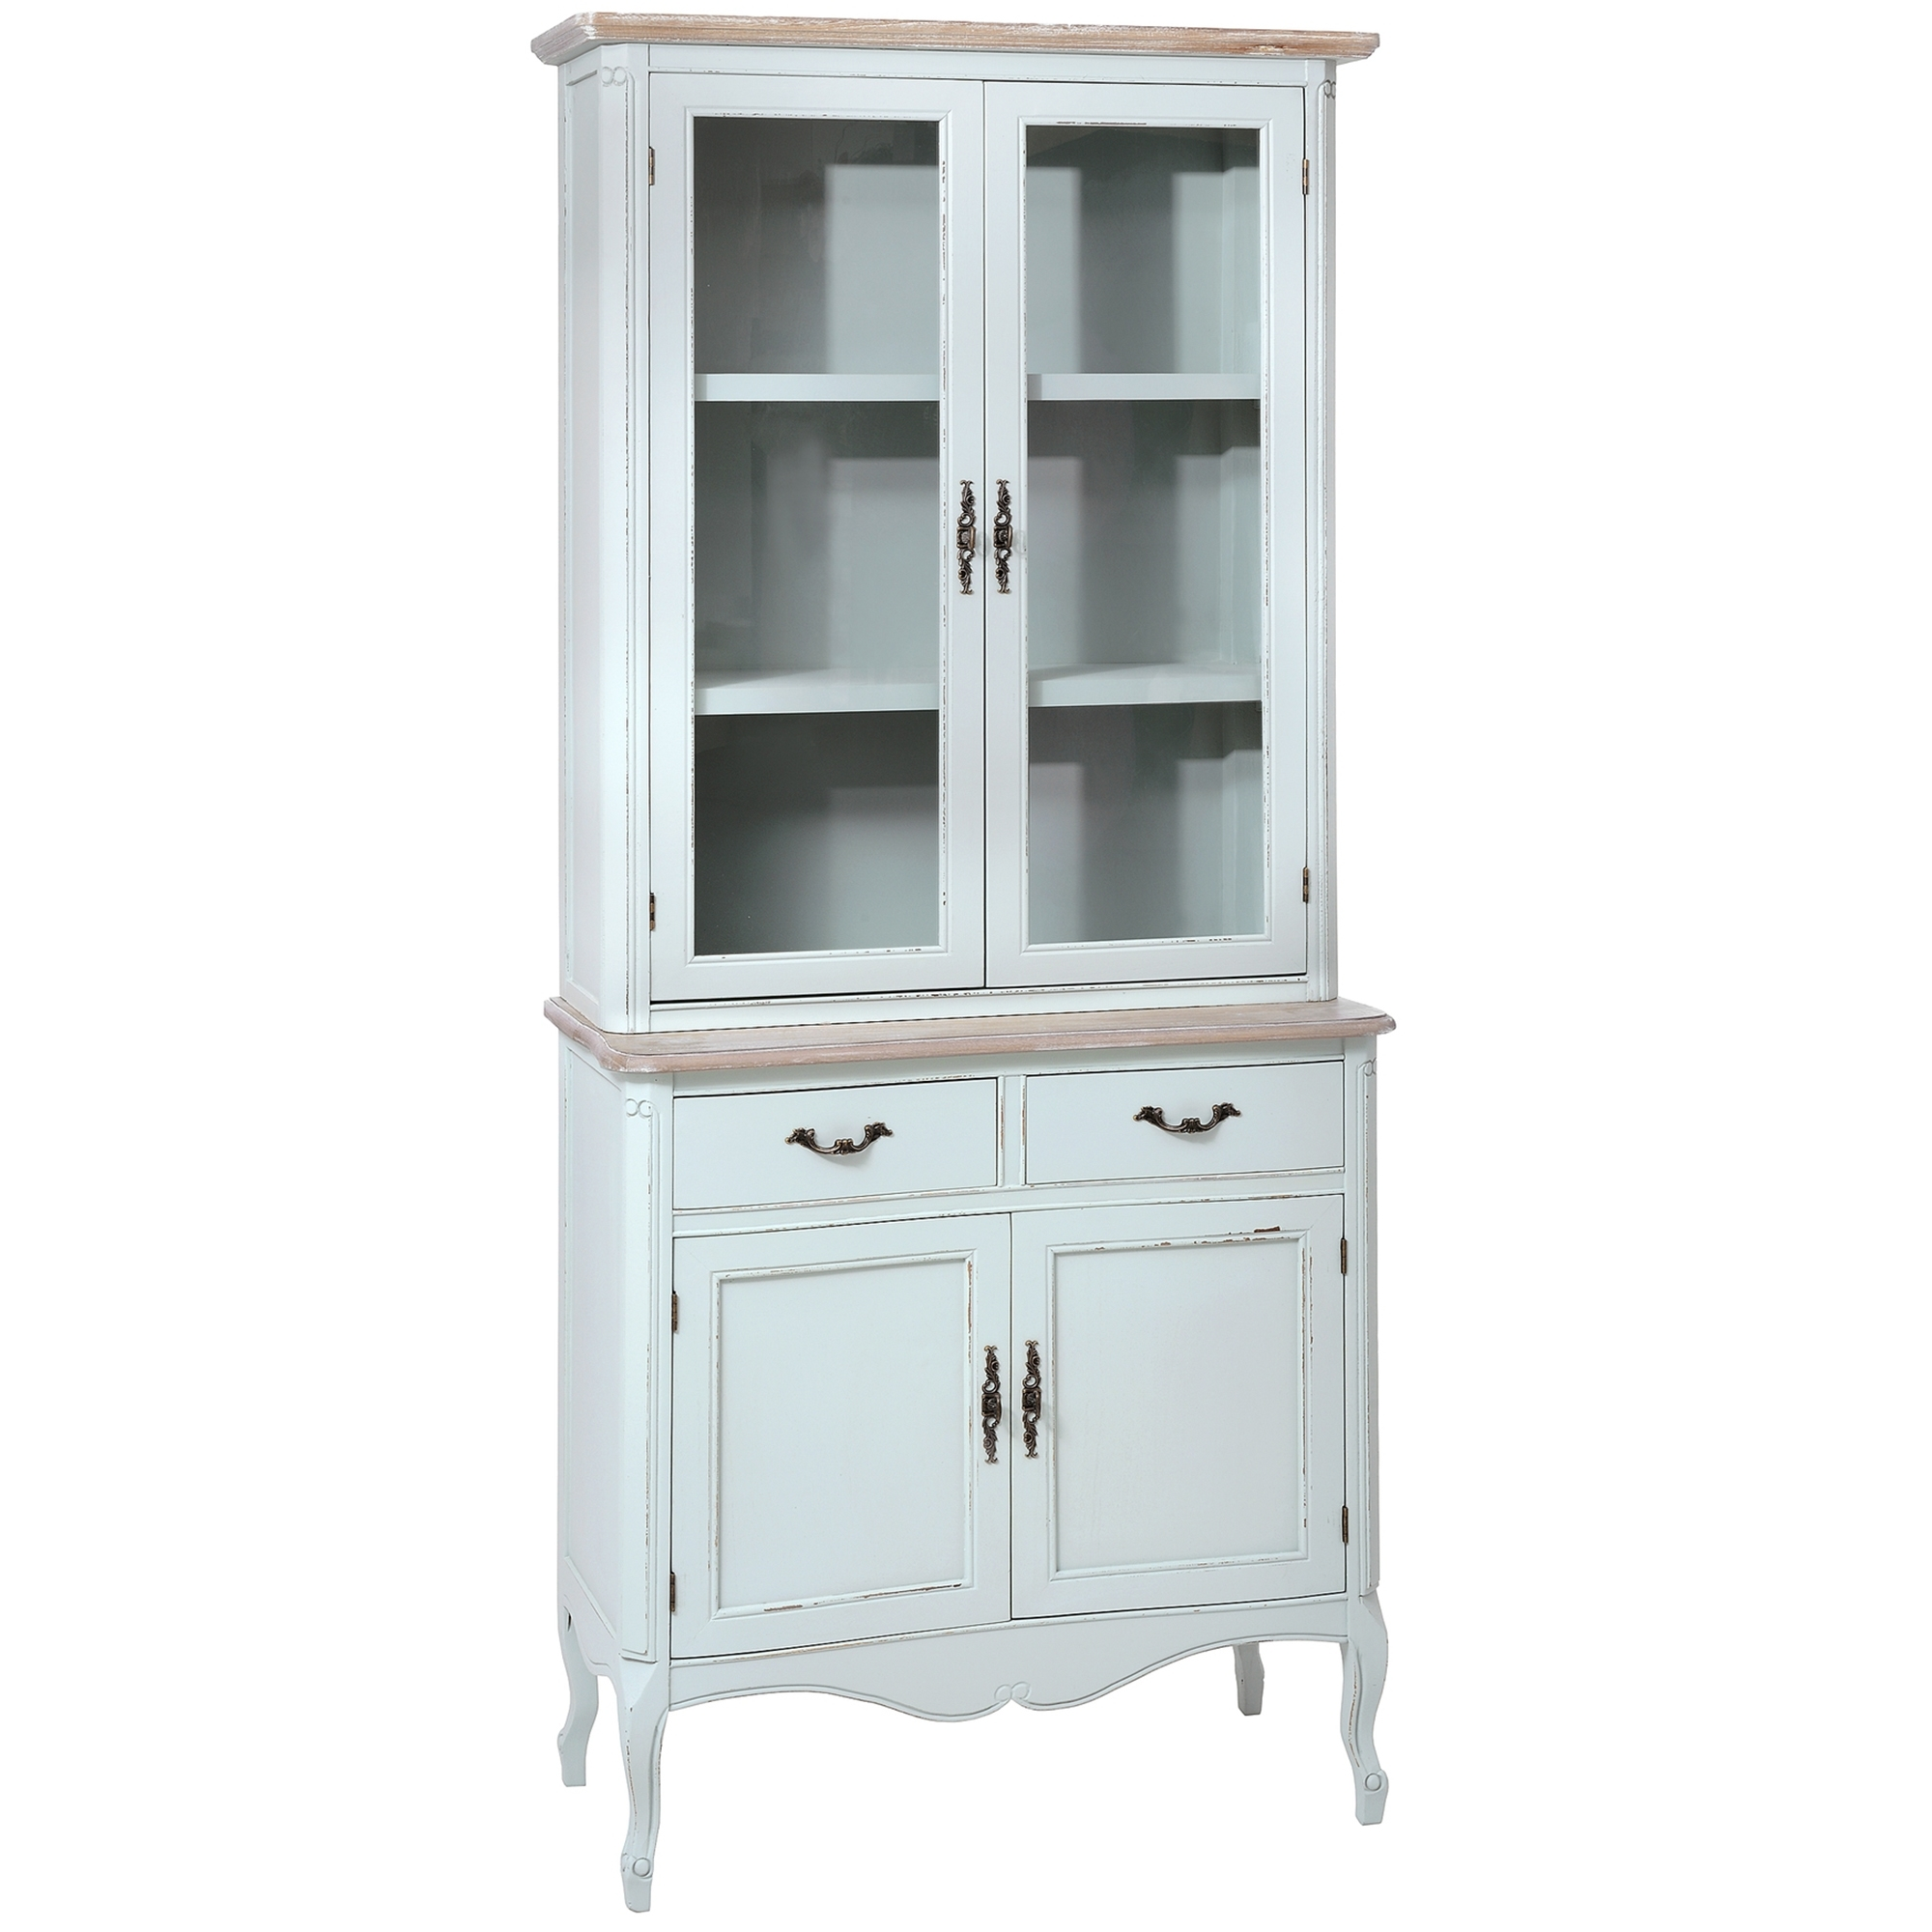 duck egg shabby chic display cabinet french furniture online now rh homesdirect365 co uk shabby chic china cabinet hutch White Distressed China Cabinet